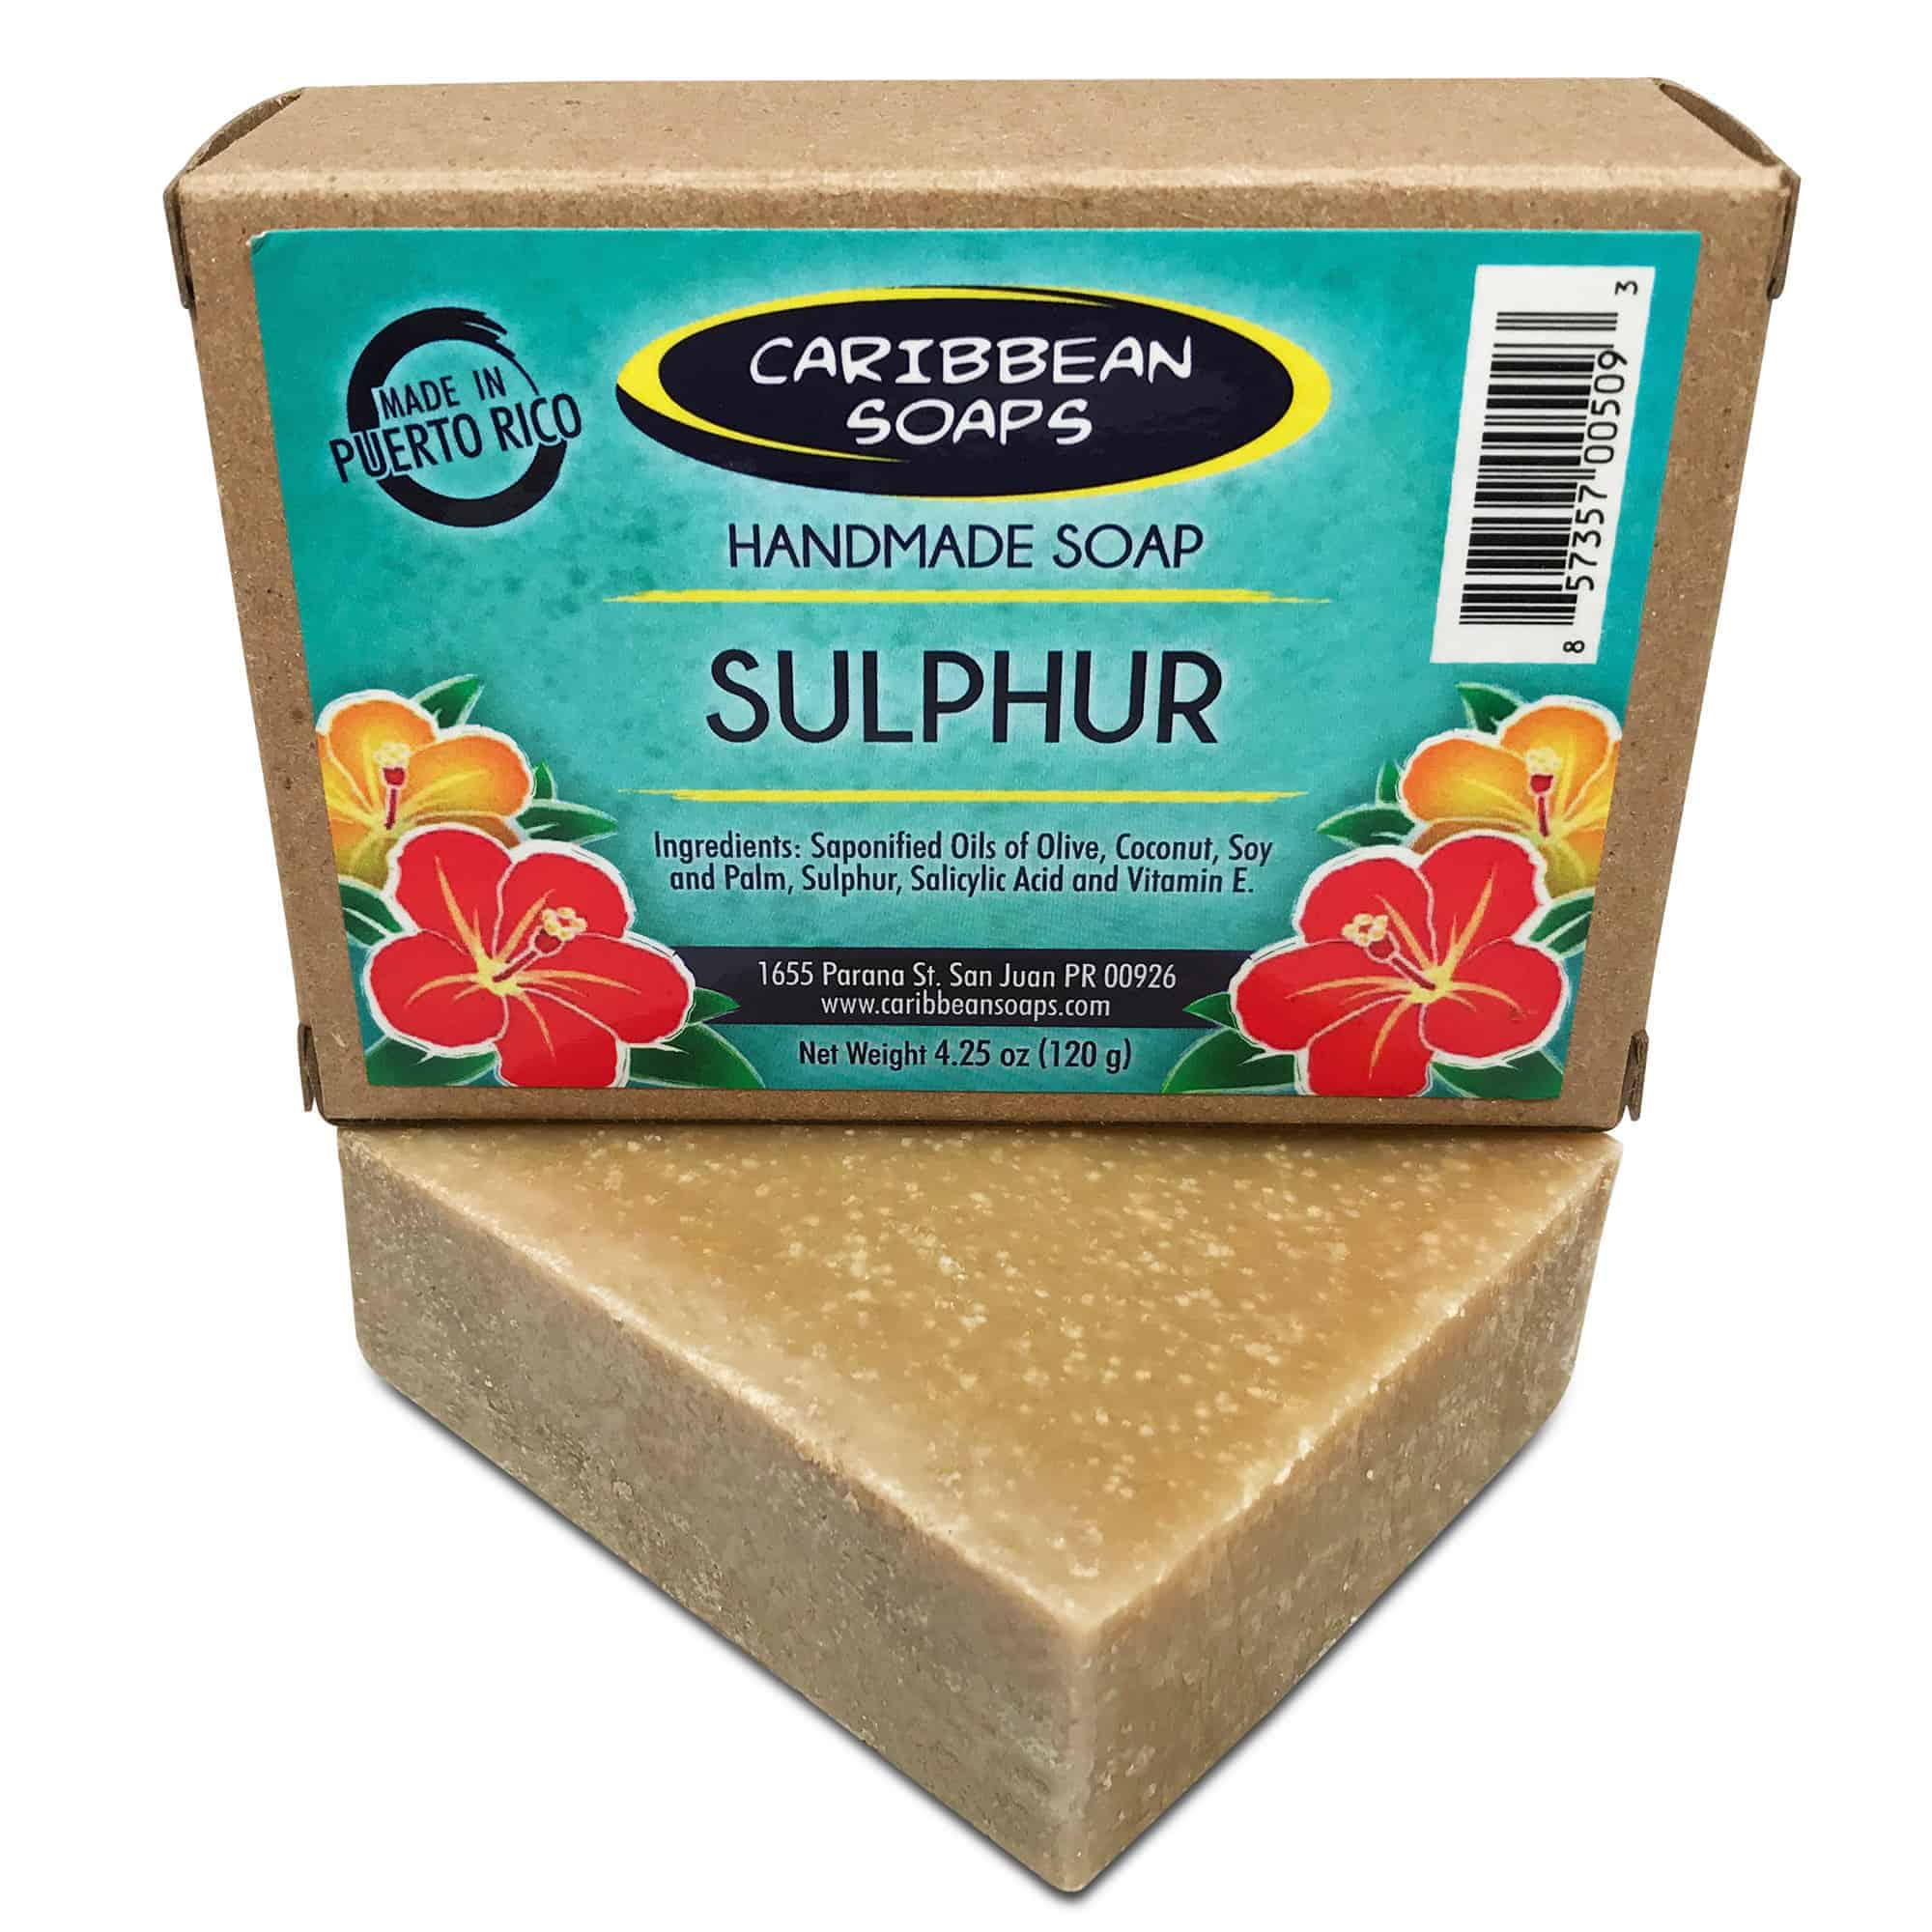 sulphur or sulfur handmade soap soap from puerto rico great for acne best bar for body acne 4.25 oz prepared by caribbean soaps made in Puerto Rico